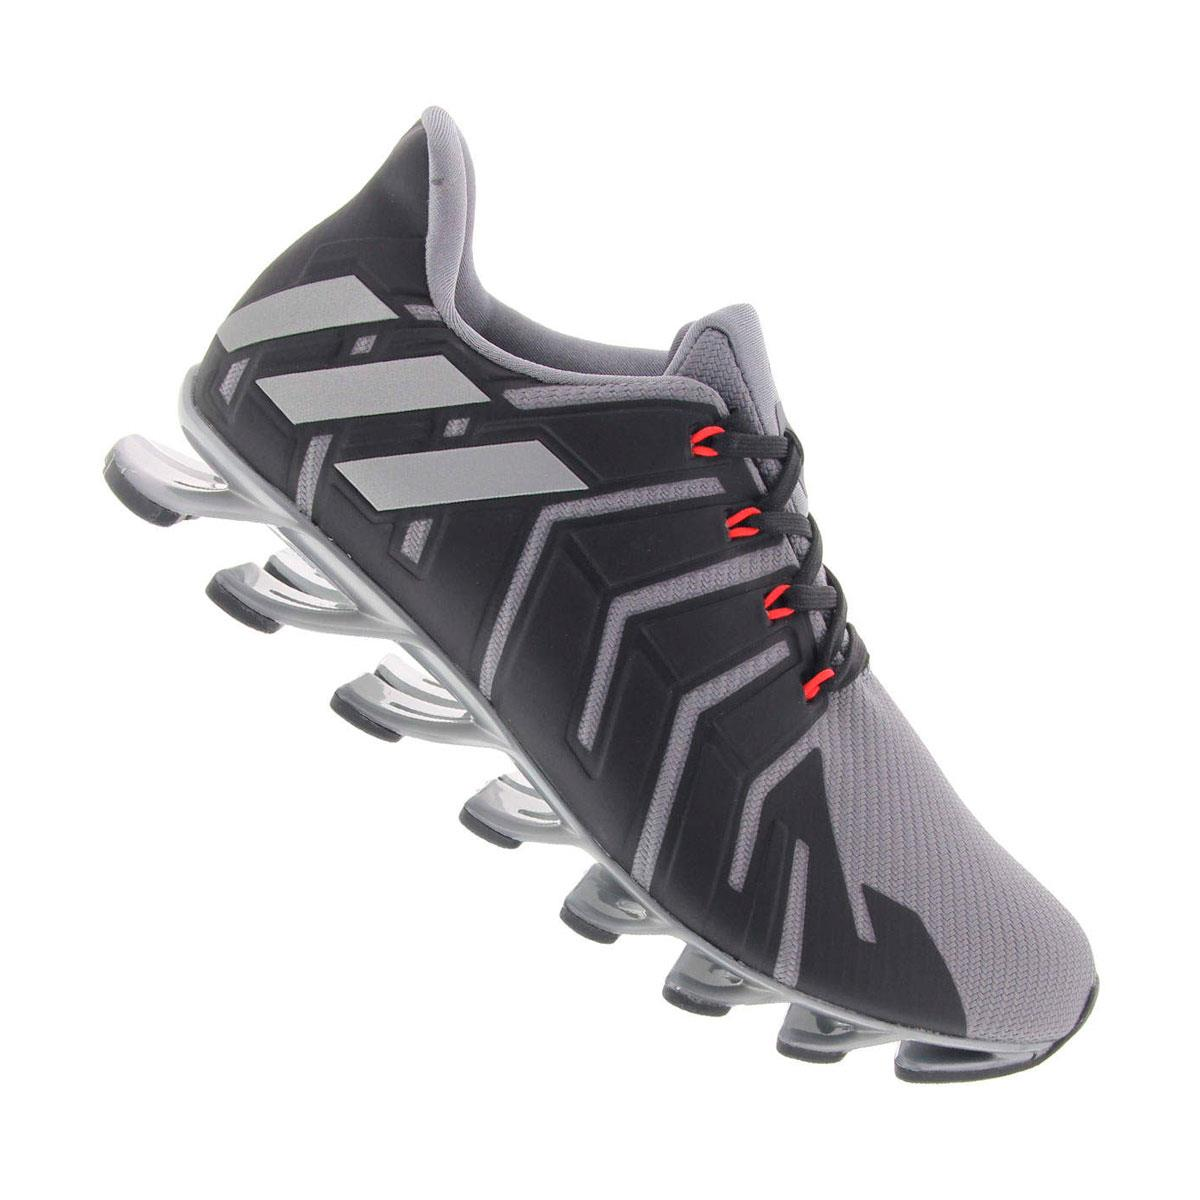 super popular 3cb35 7a20f ... wholesale adidas springblade drive 2 core black solar yellow tênis adidas  springblade pro masculino cadc3 160d0